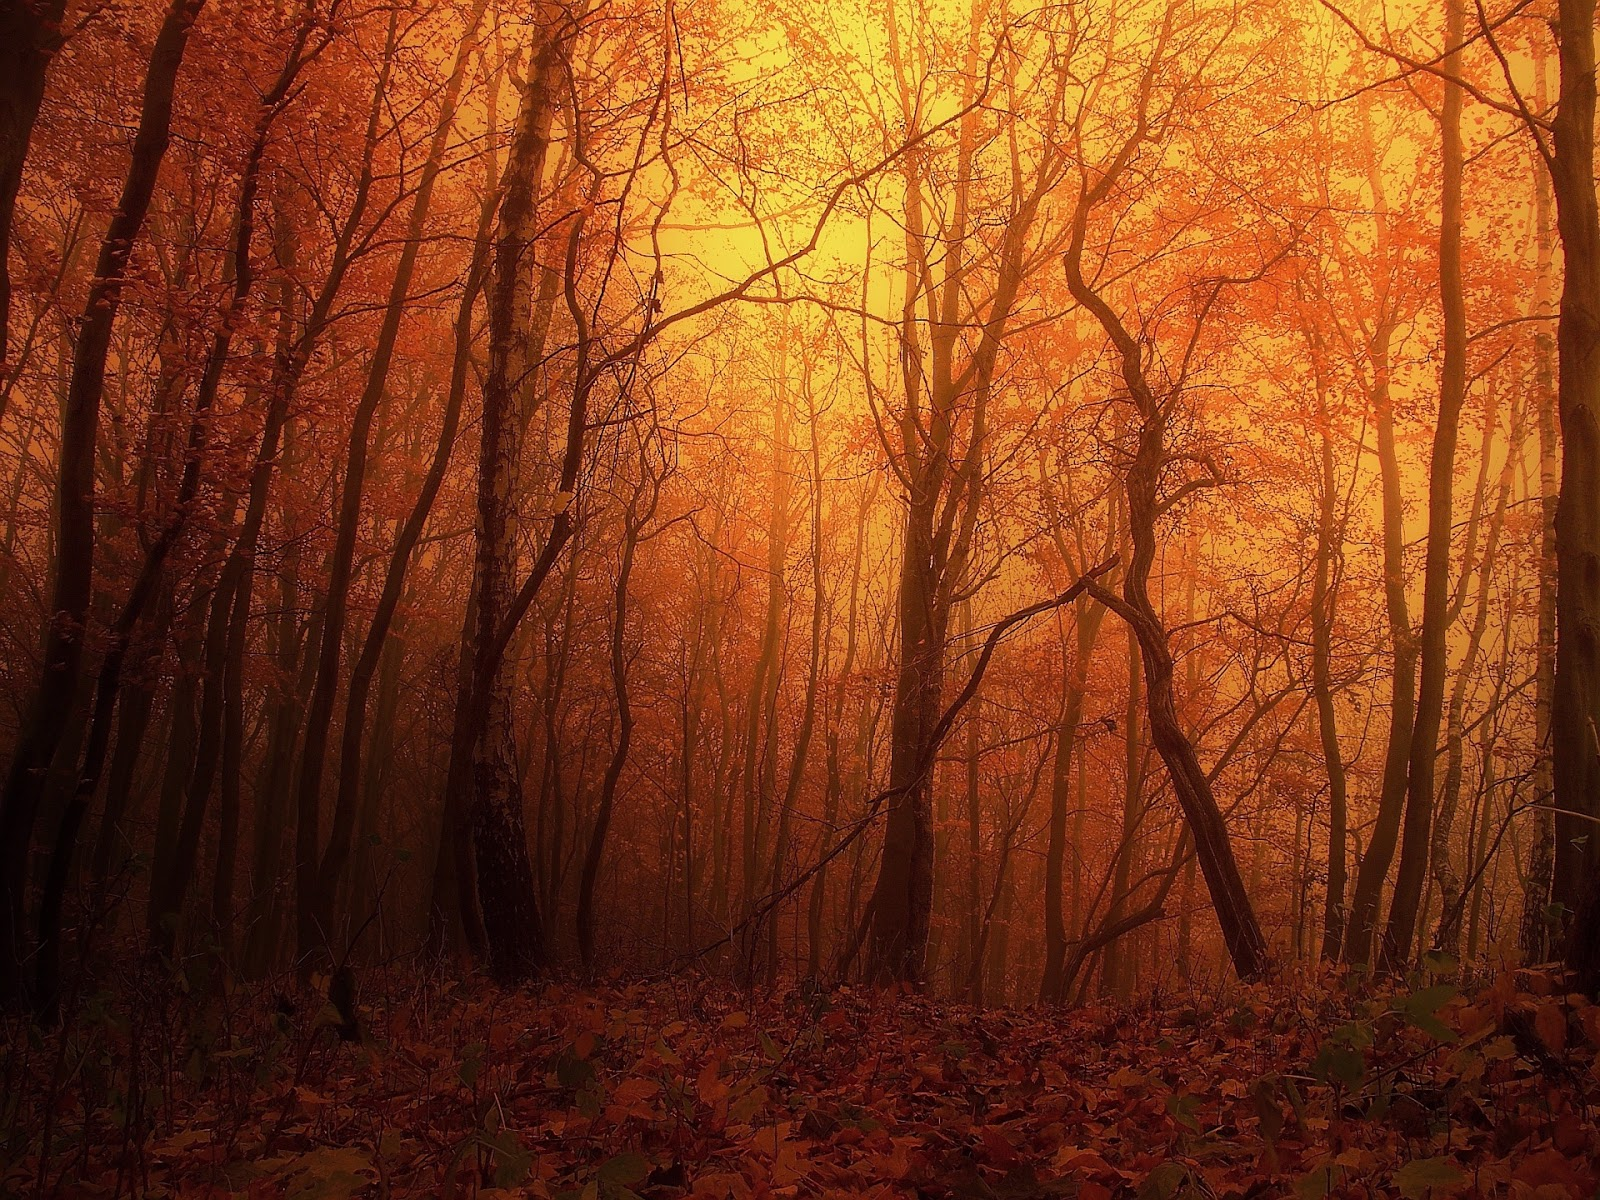 orange forest hd wallpapers ~ hyip bitz - hyip investment monitor